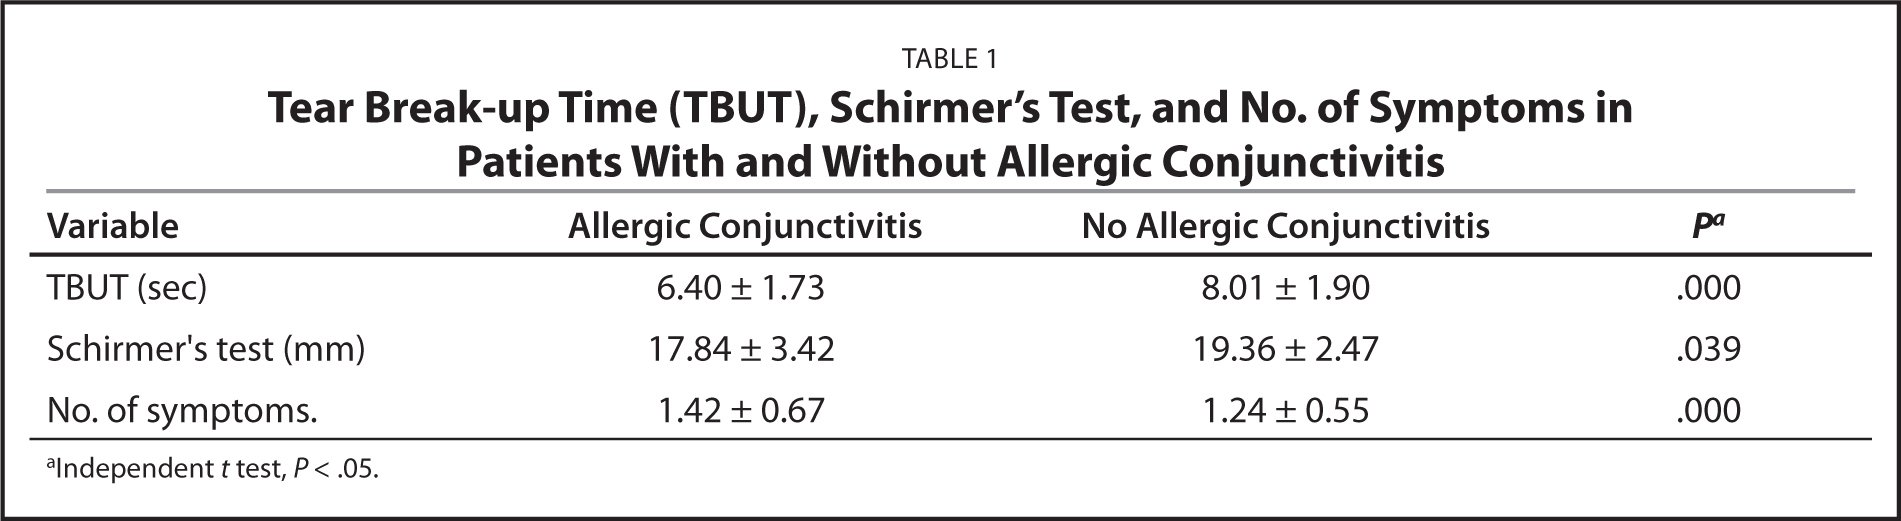 Tear Break-up Time (TBUT), Schirmer's Test, and No. of Symptoms in Patients With and Without Allergic Conjunctivitis